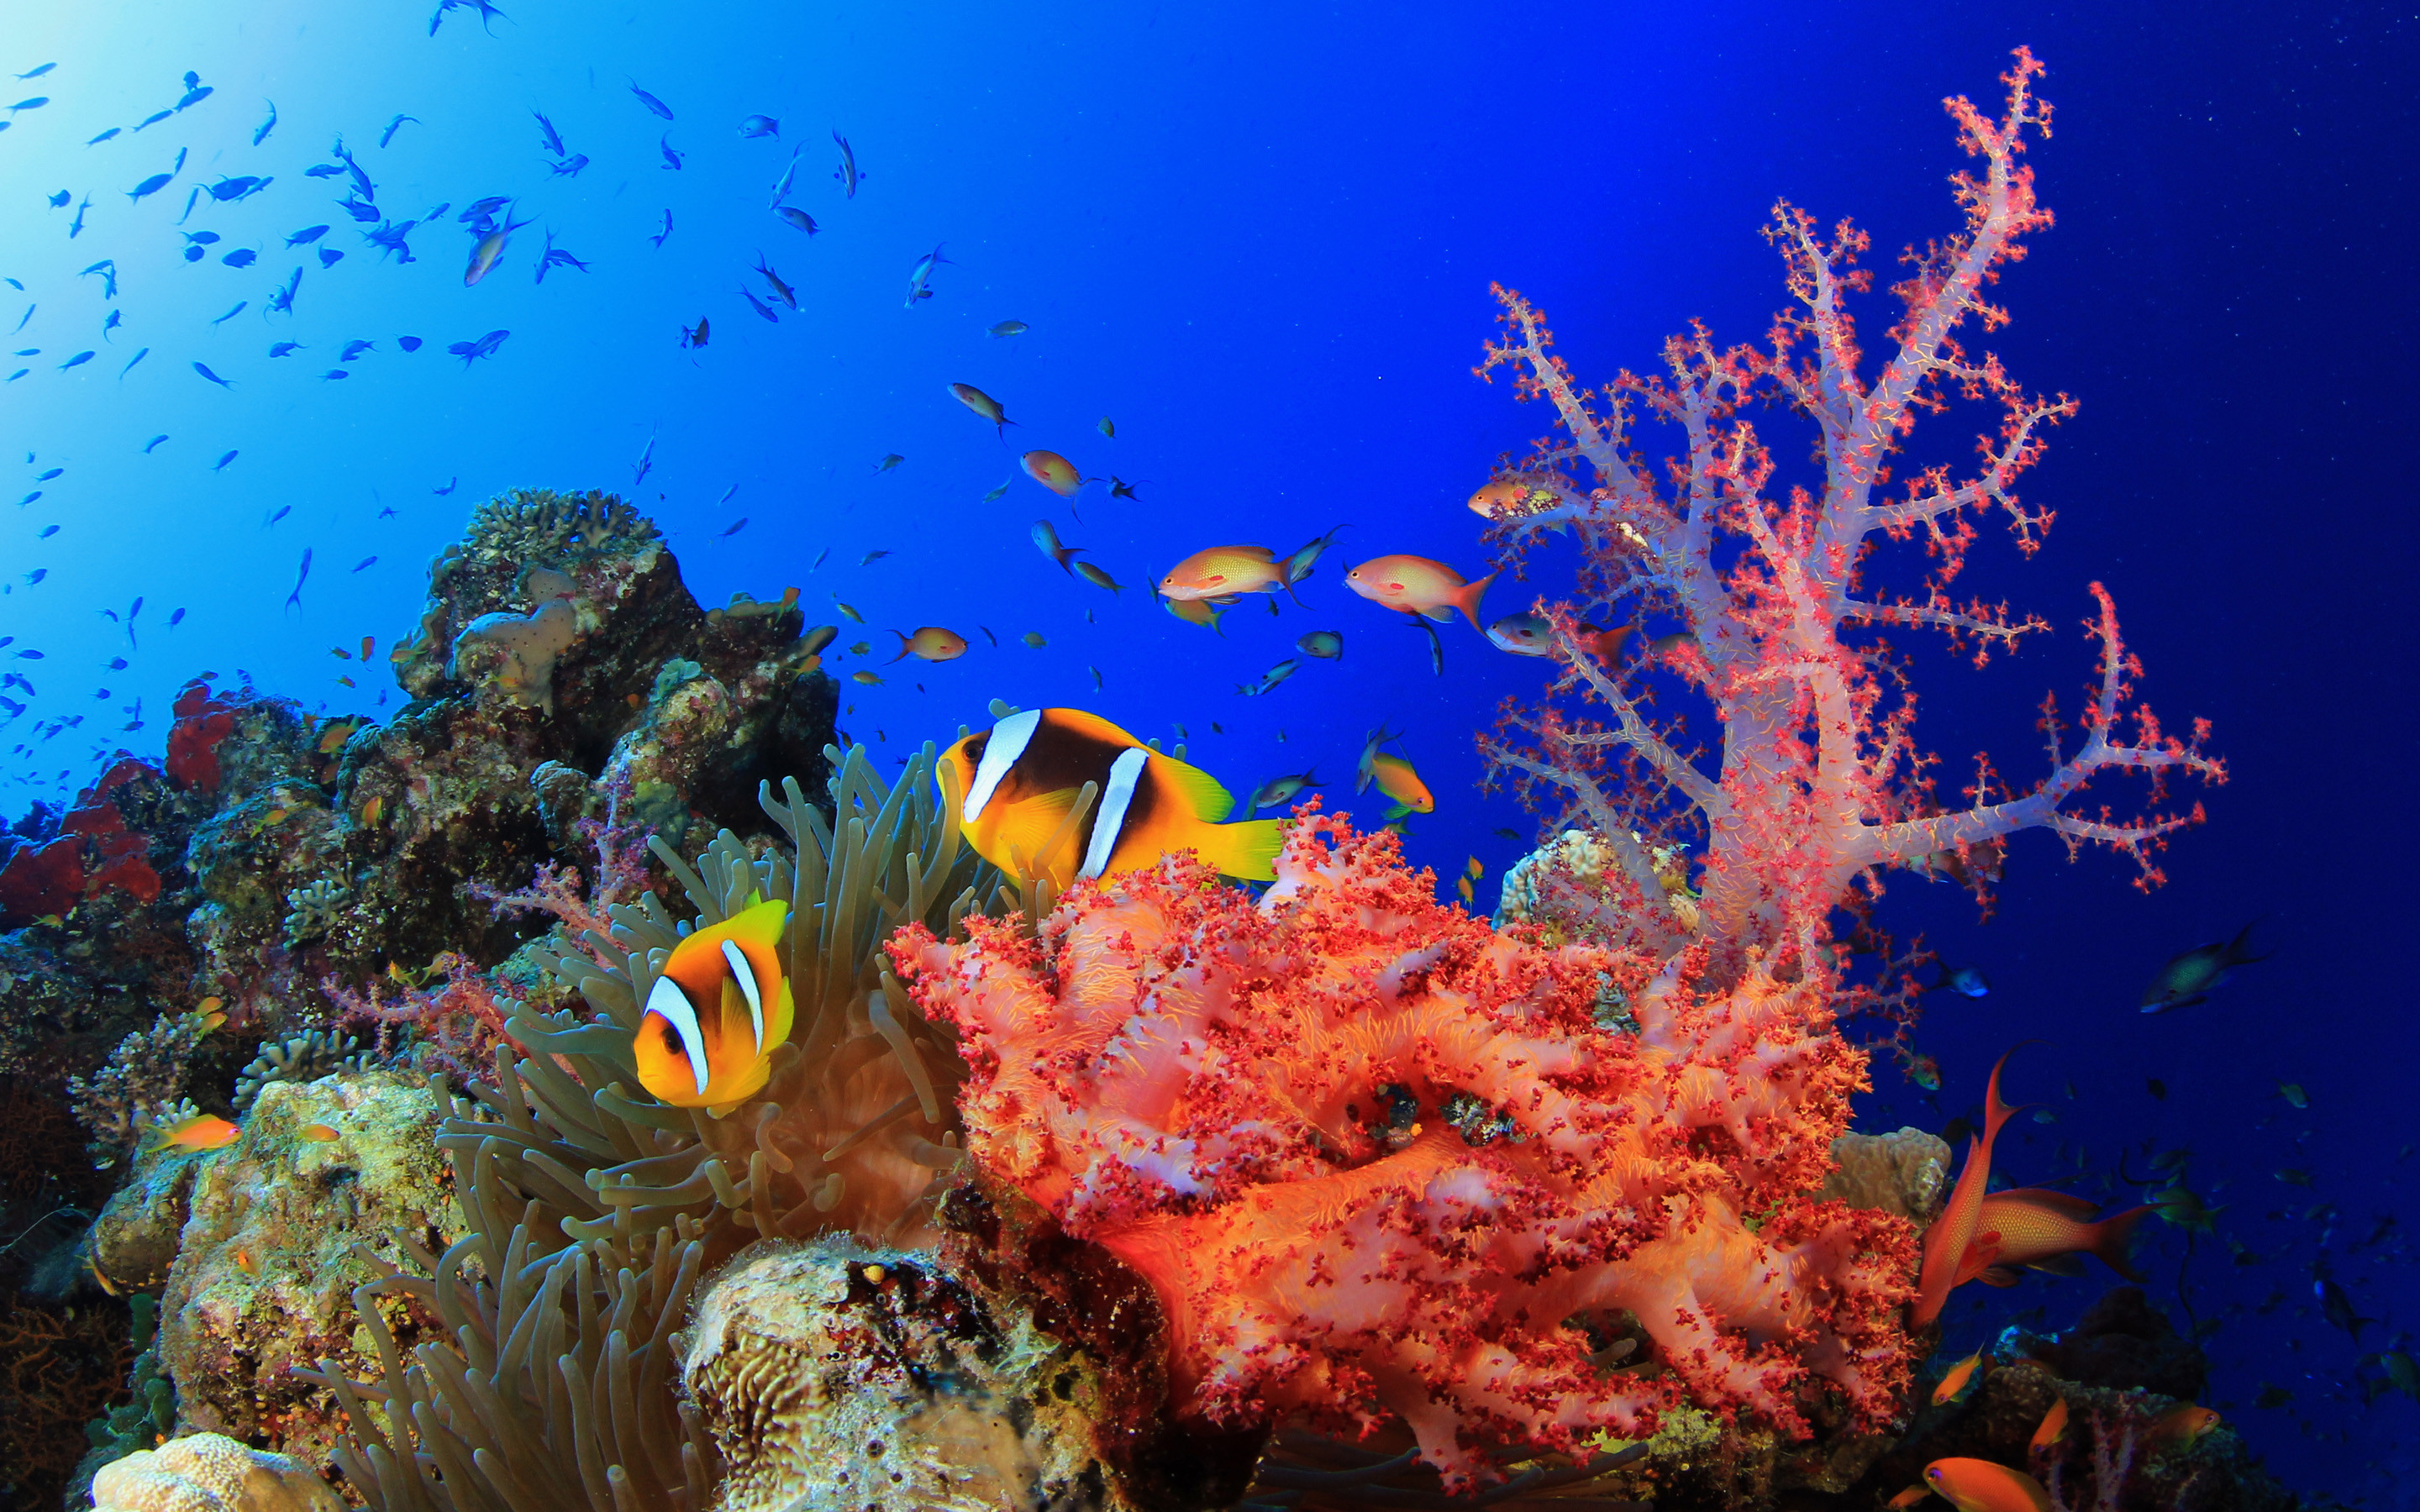 2880x1800 Explore and share Colorful Coral Reef Wallpaper on WallpaperSafari